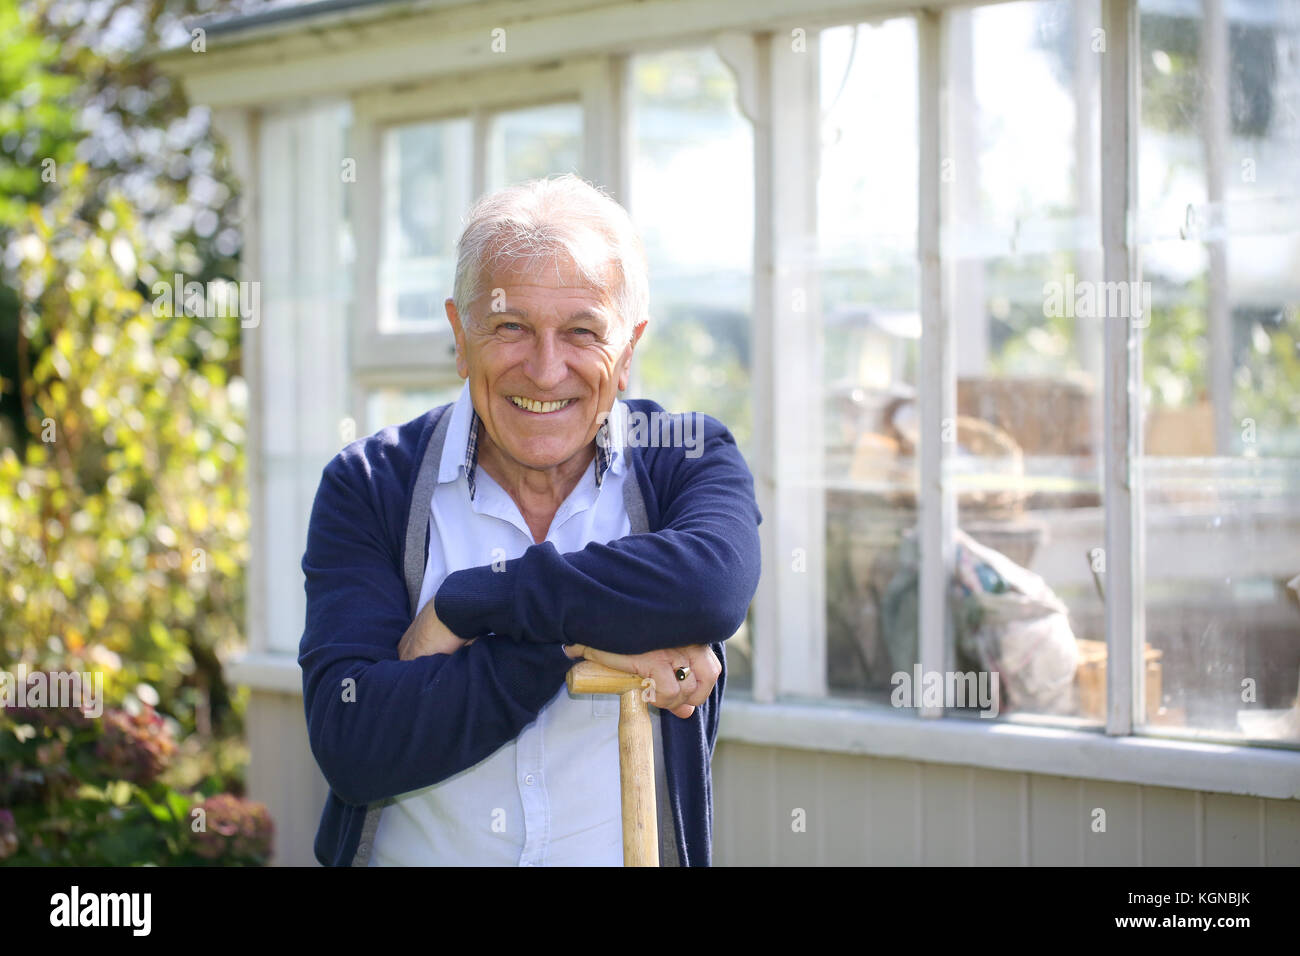 Cheerful senior man standing by greenhouse - Stock Image